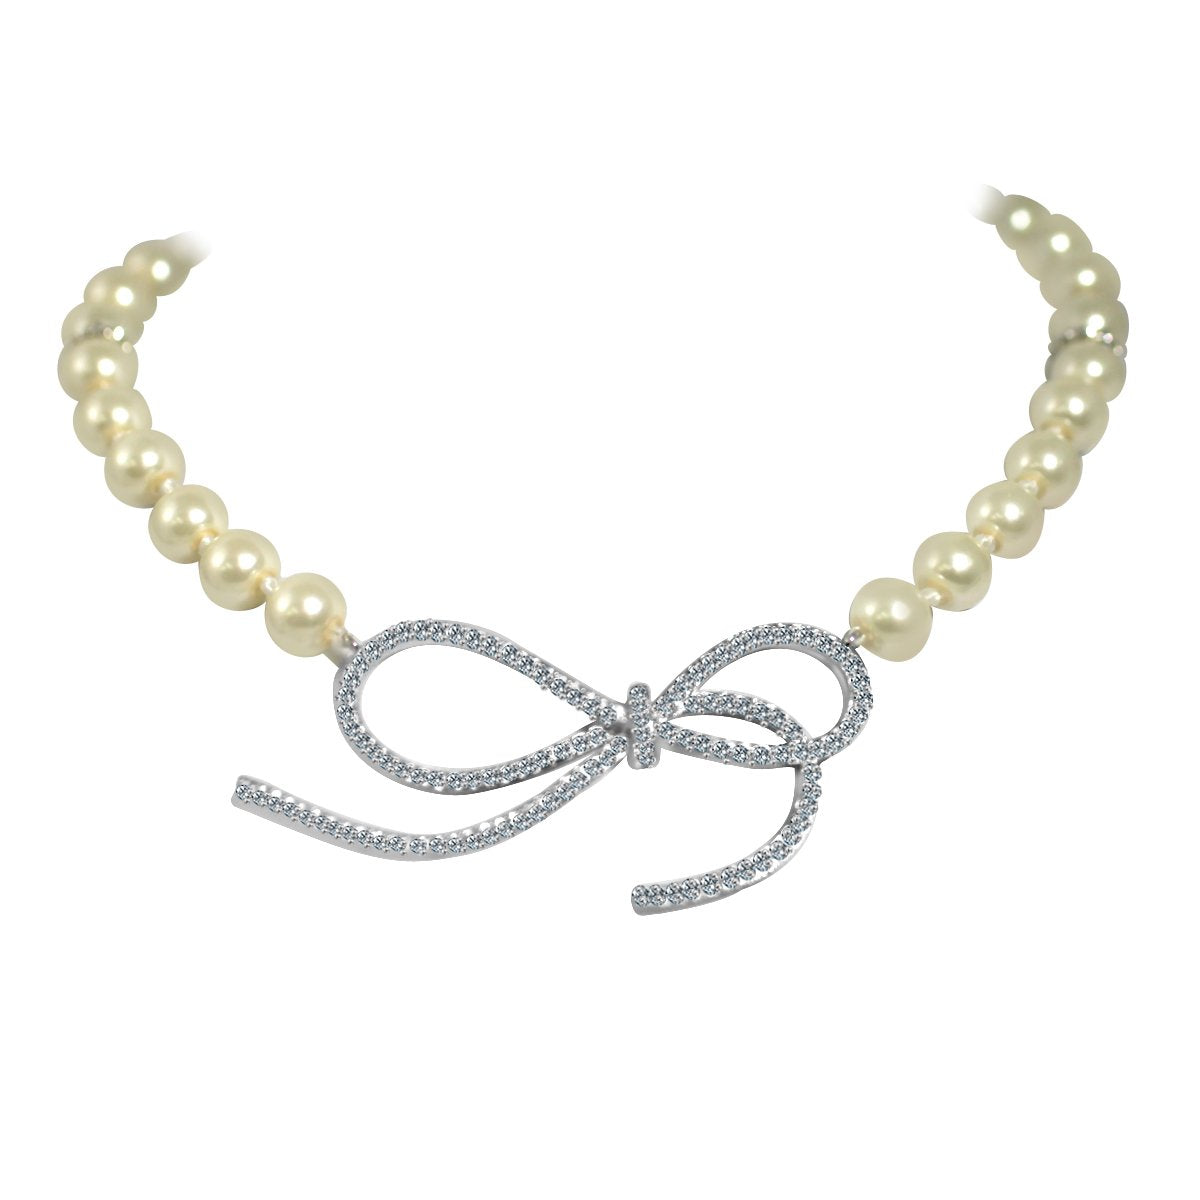 Glass pearls necklace with Zirconite Cubic zirconia set Infinity Charm - 702N10P